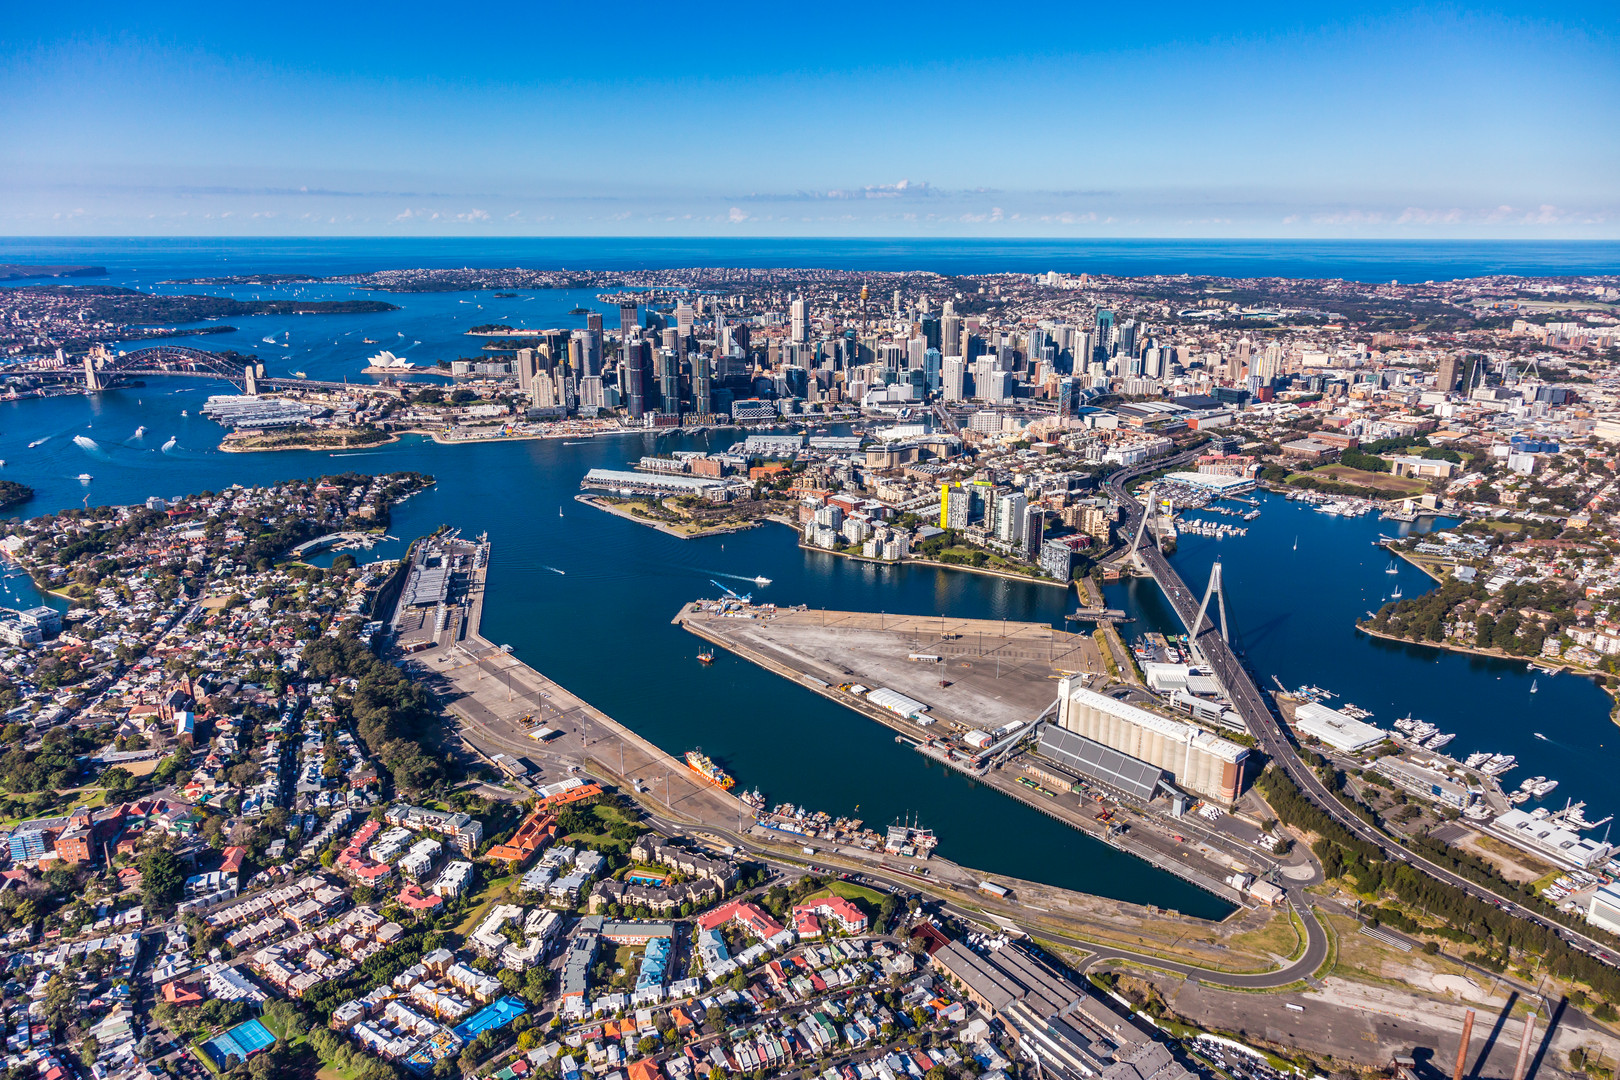 Aerial view of Glebe Island with view of city